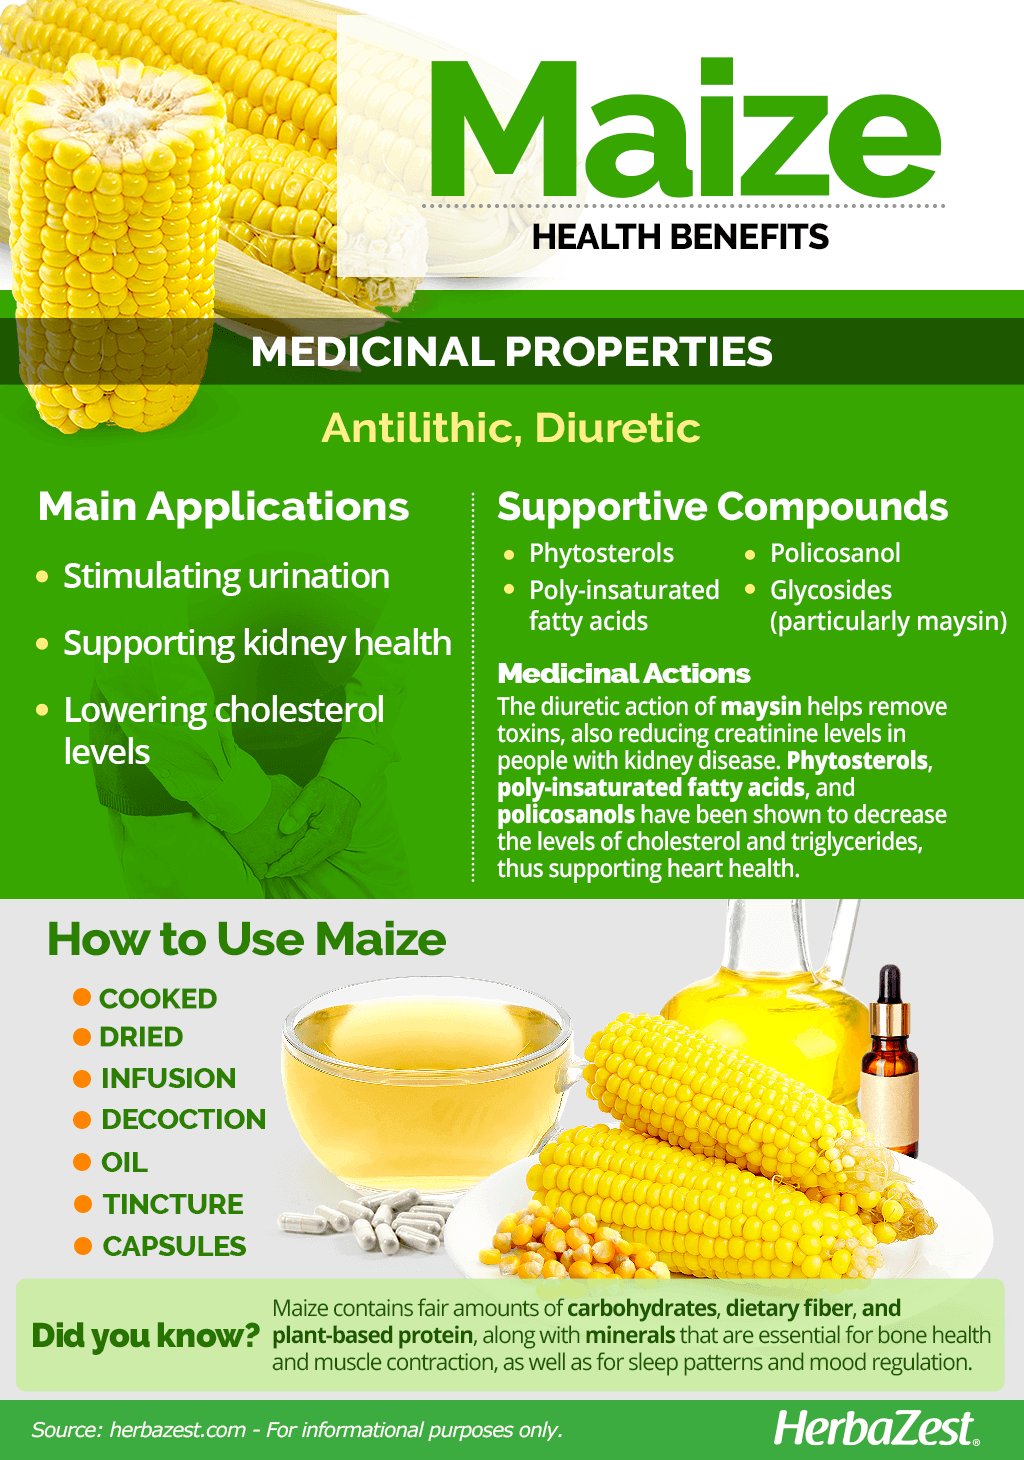 All About Maize